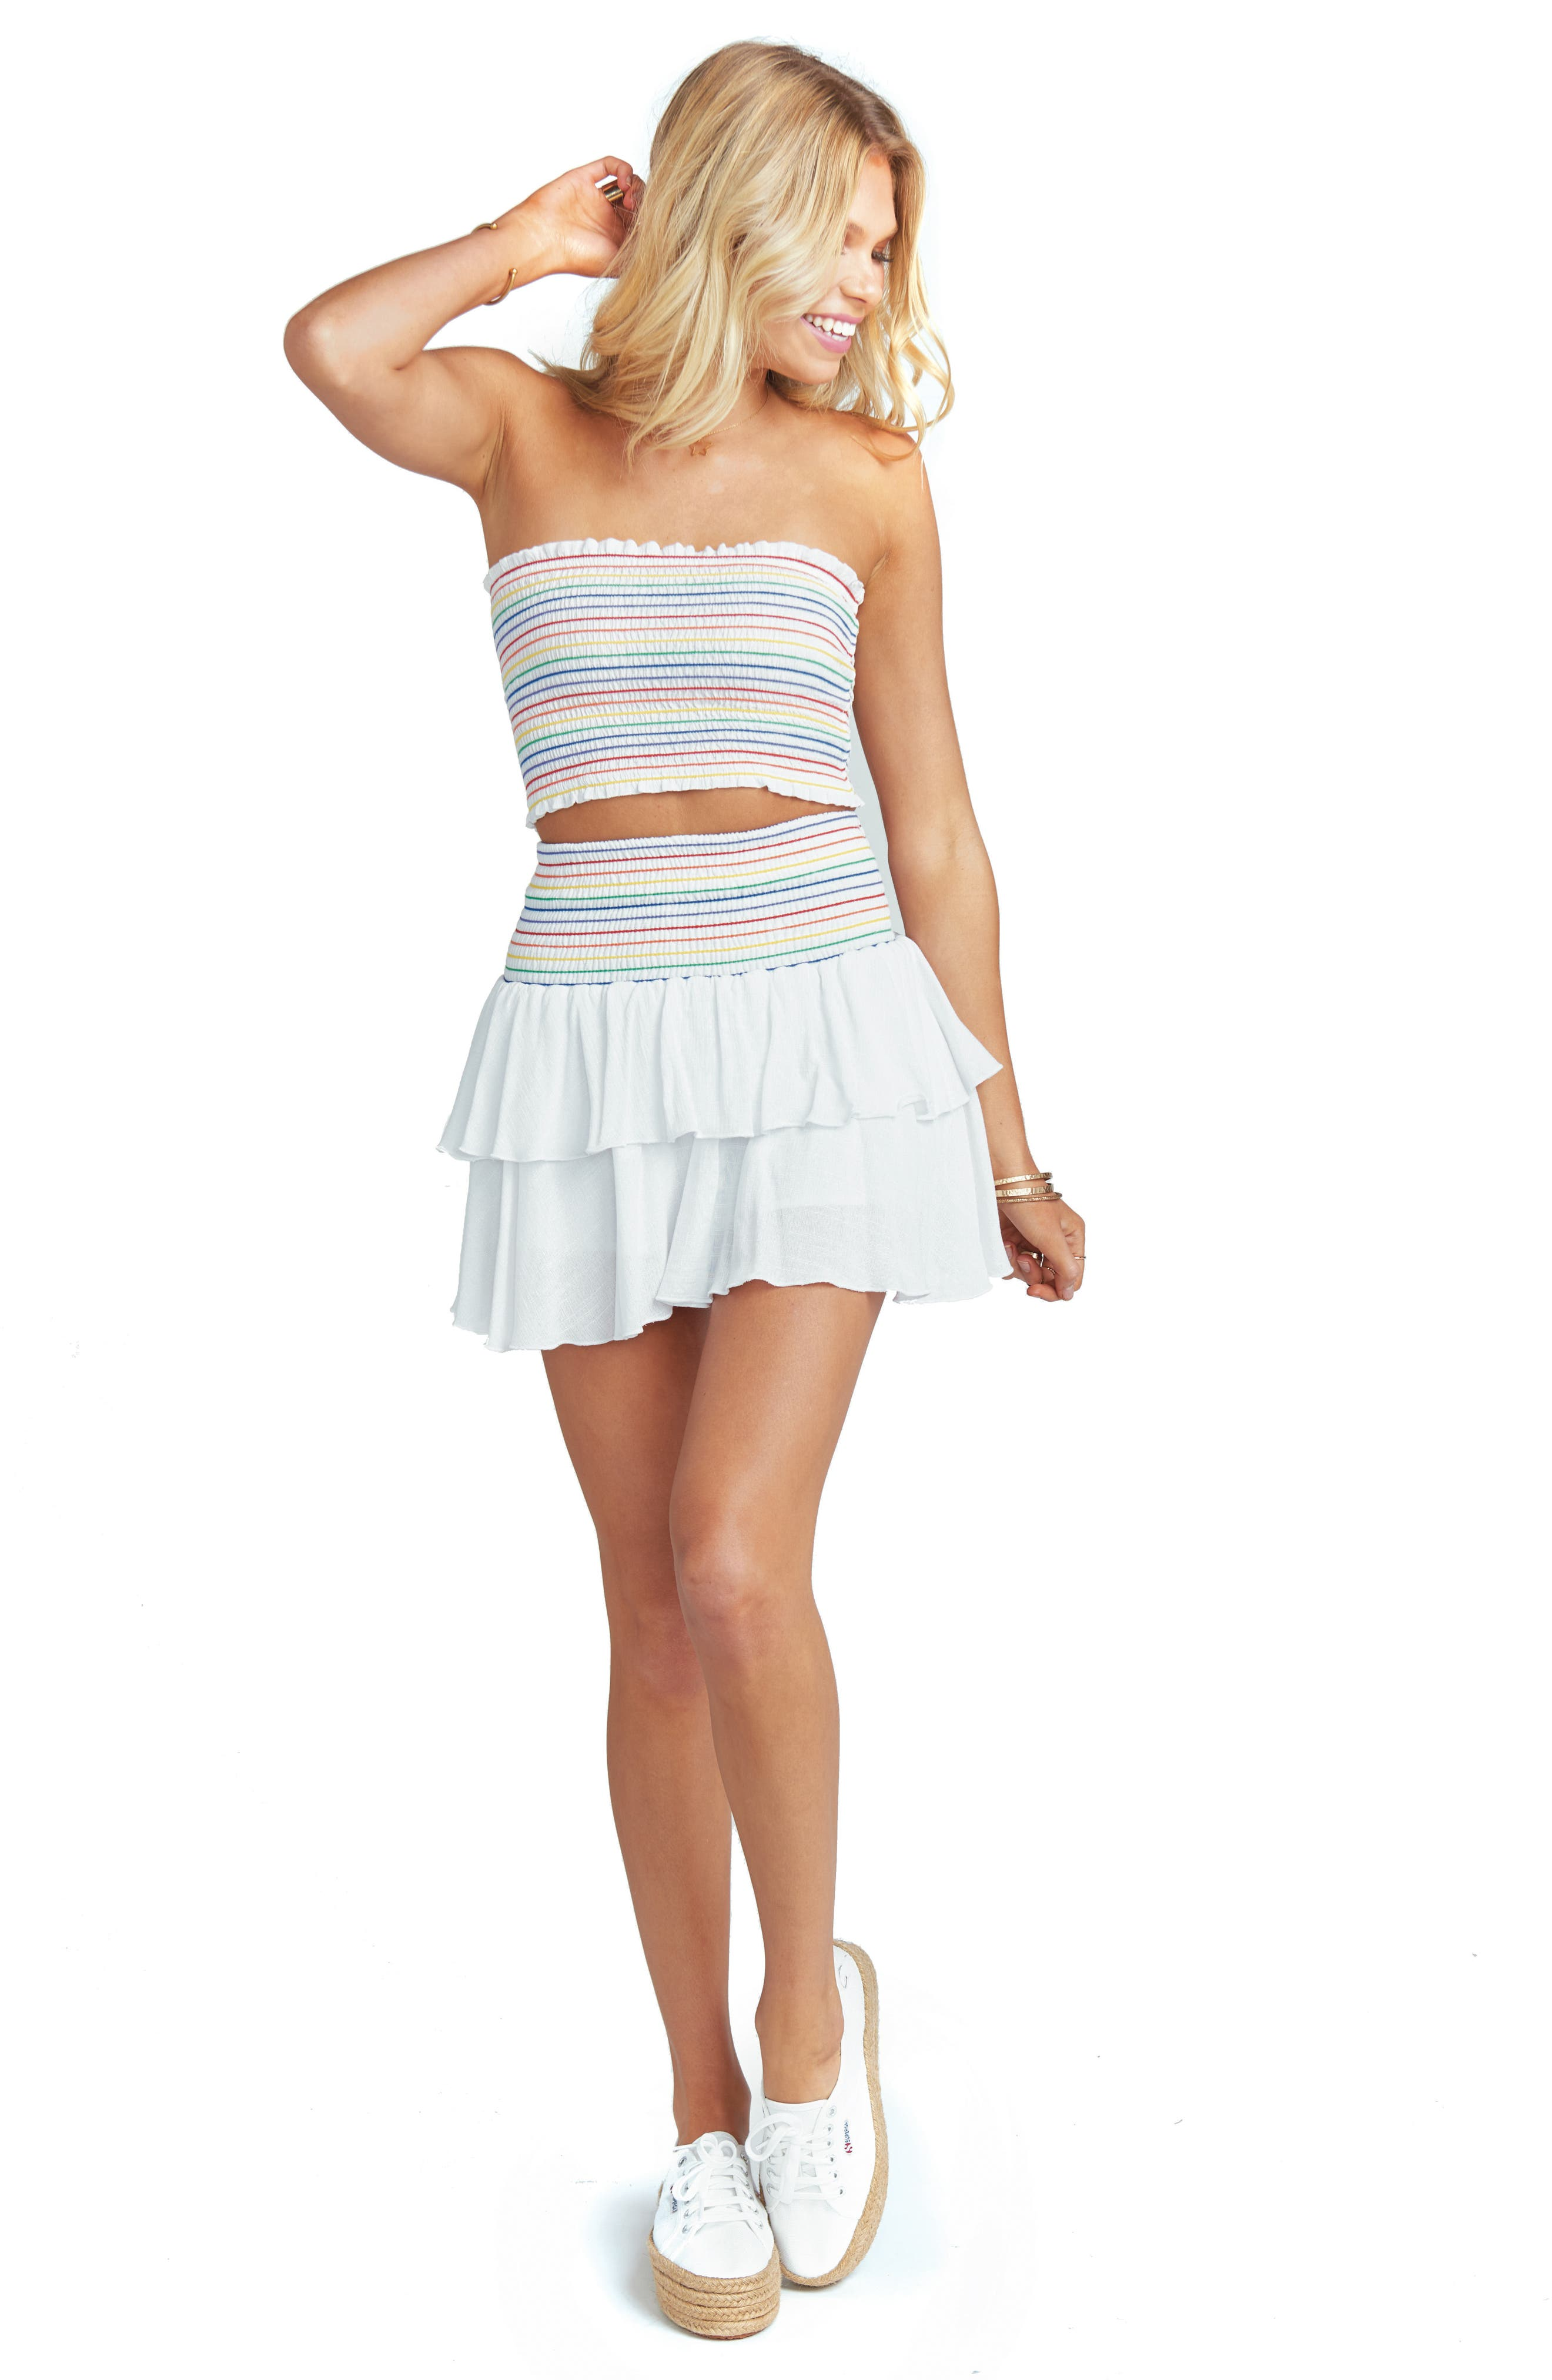 Frolick Ruffle Skort,                             Alternate thumbnail 2, color,                             White Cruise With Rainbow